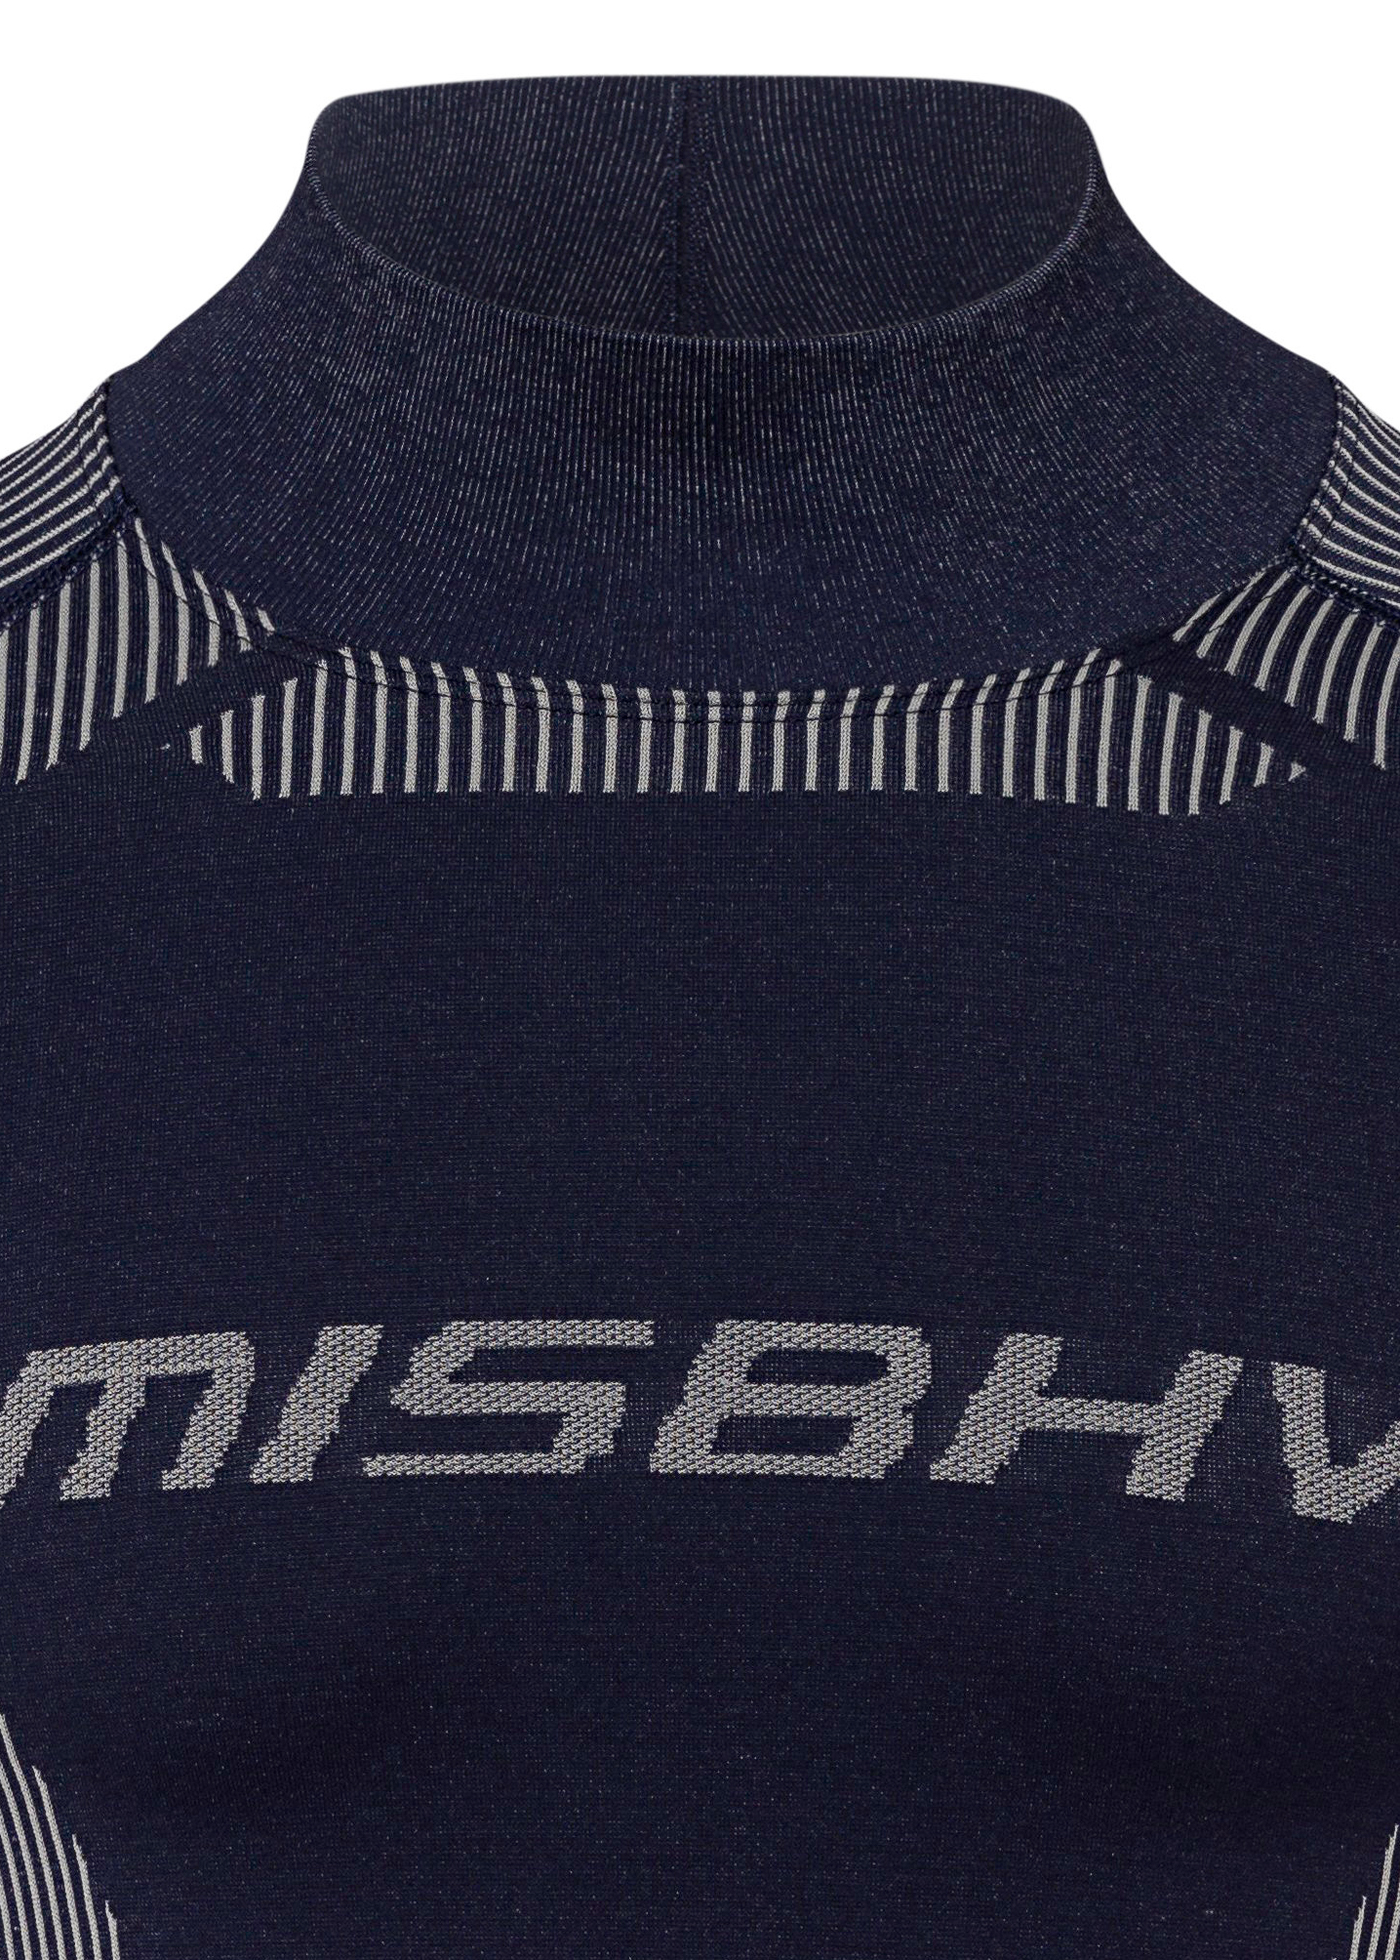 SPORT ACTIVE CLASSIC LONGSLEEVE image number 2